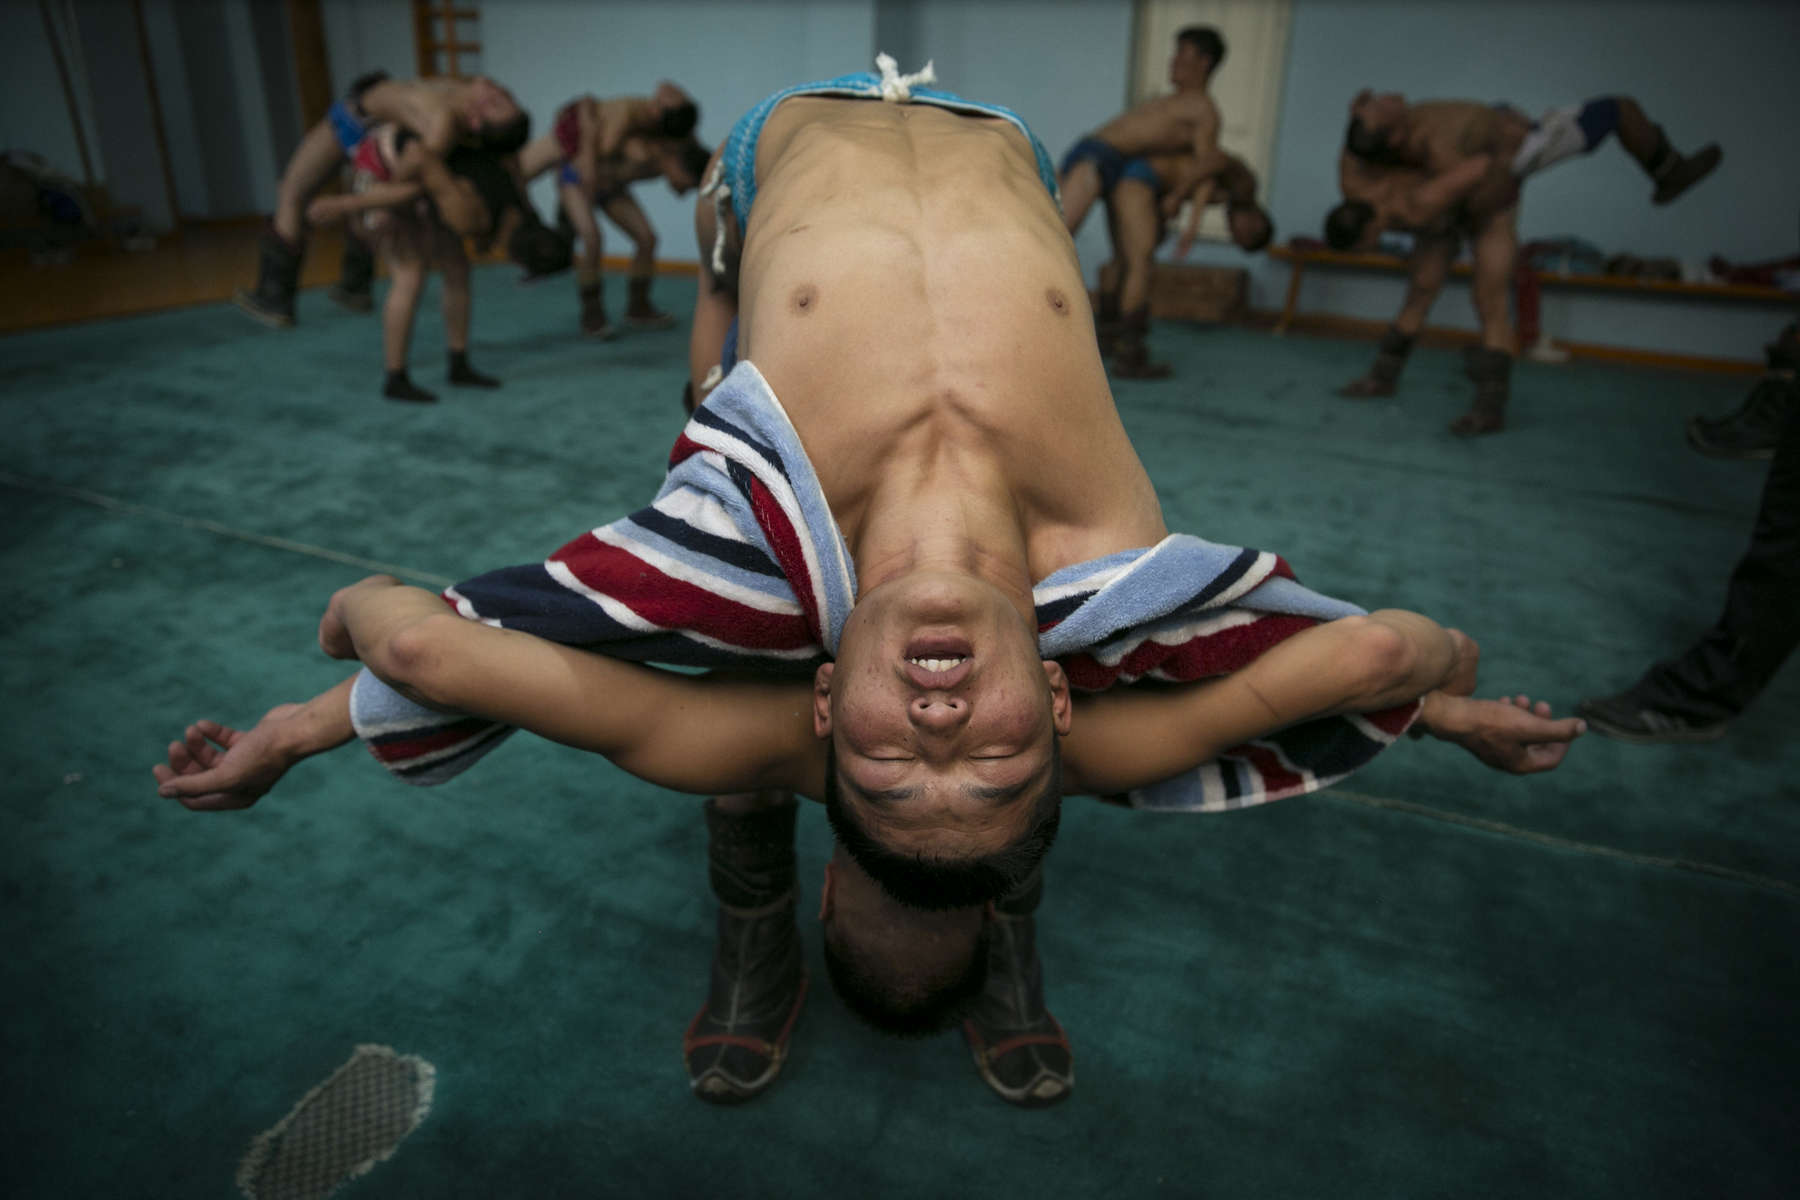 Mongolian wrestlers go through warm up exercises at a local wrestling school in Ulan Batar. Mongolia is the most sparsely populated country on earth, but its people are some of the strongest. In Mongolia, wrestling is the most important sport that runs deep into its culture along with horsemanship and archery. Going back for hundreds of years, history books tell the story of how Genghis Khan considered wrestling to be an important way to keep his army combat ready while back in the Qing Dynasty (1646–1911) regular wrestling events were held. In Mongolia's capitol city, Ulan Batar is home to many wrestling schools where almost daily you can see dozens of young men sweating in crowded gyms while in schools both girls and boys are taught some wrestling techniques.While my photo story gives a real behind the scenes look, it is unusual for a woman to document this macho scene of sweat and endurance.